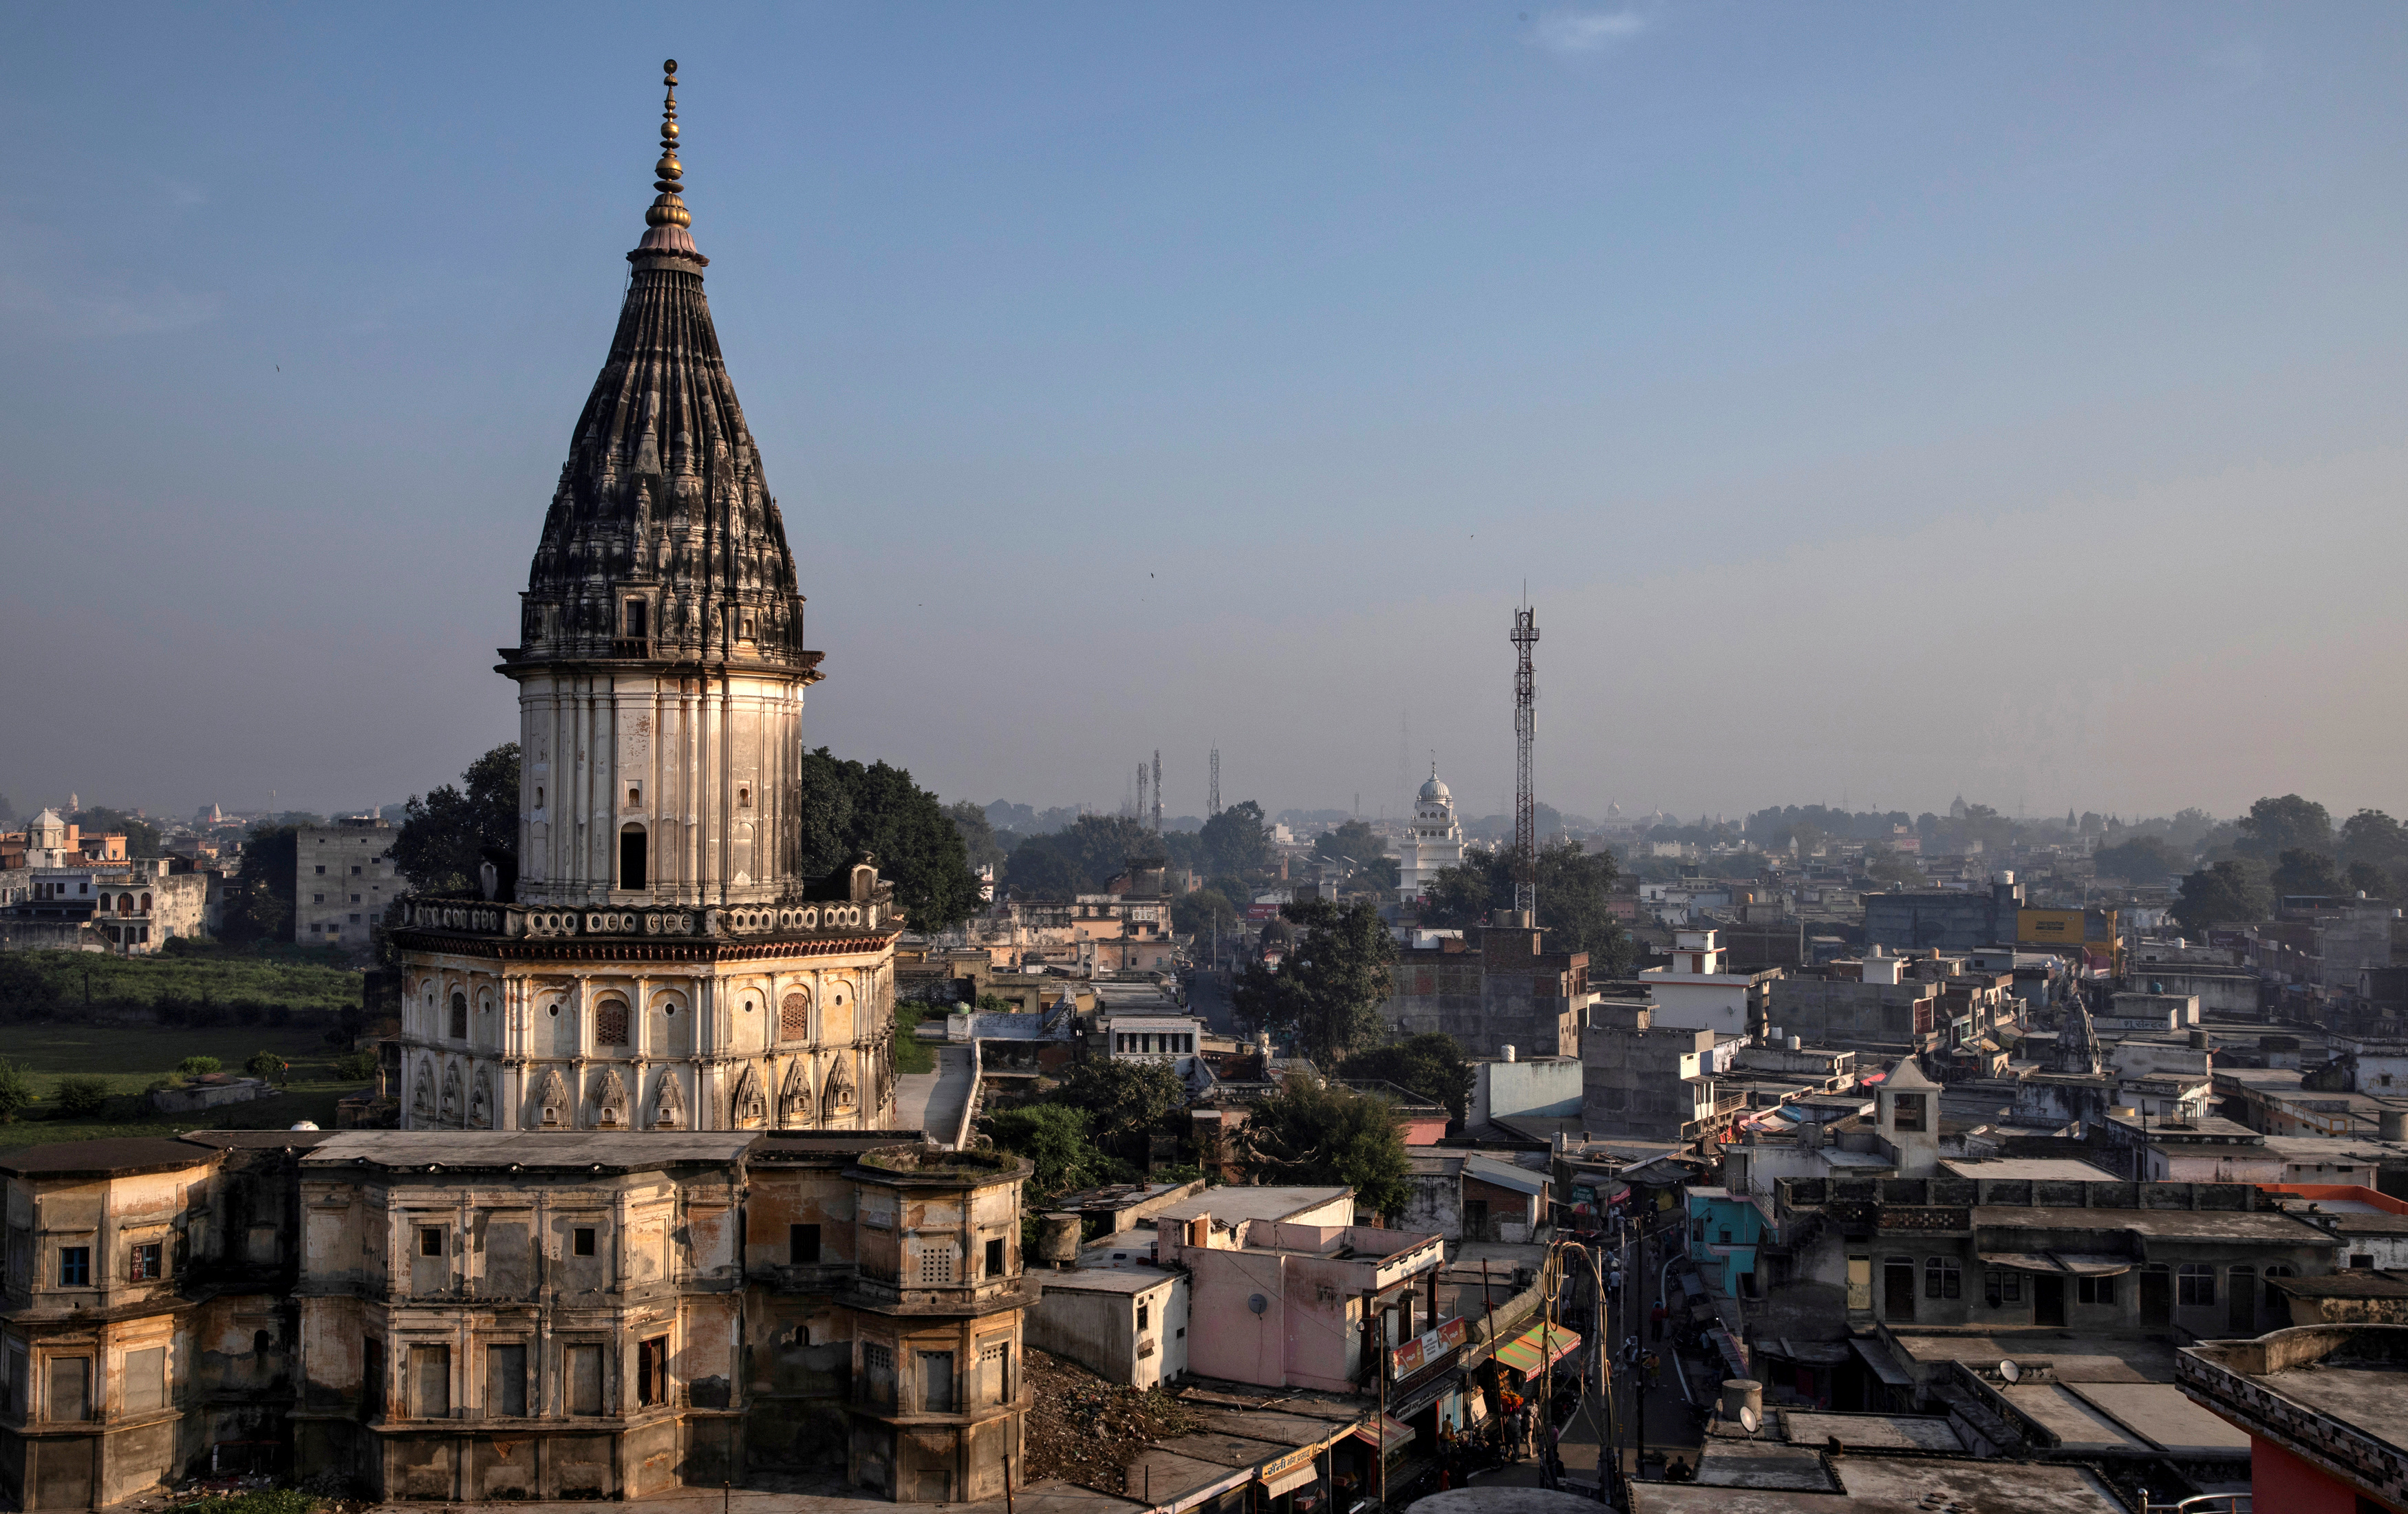 A general view of Ayodhya city, India, October 22, 2019. REUTERS/Danish Siddiqui